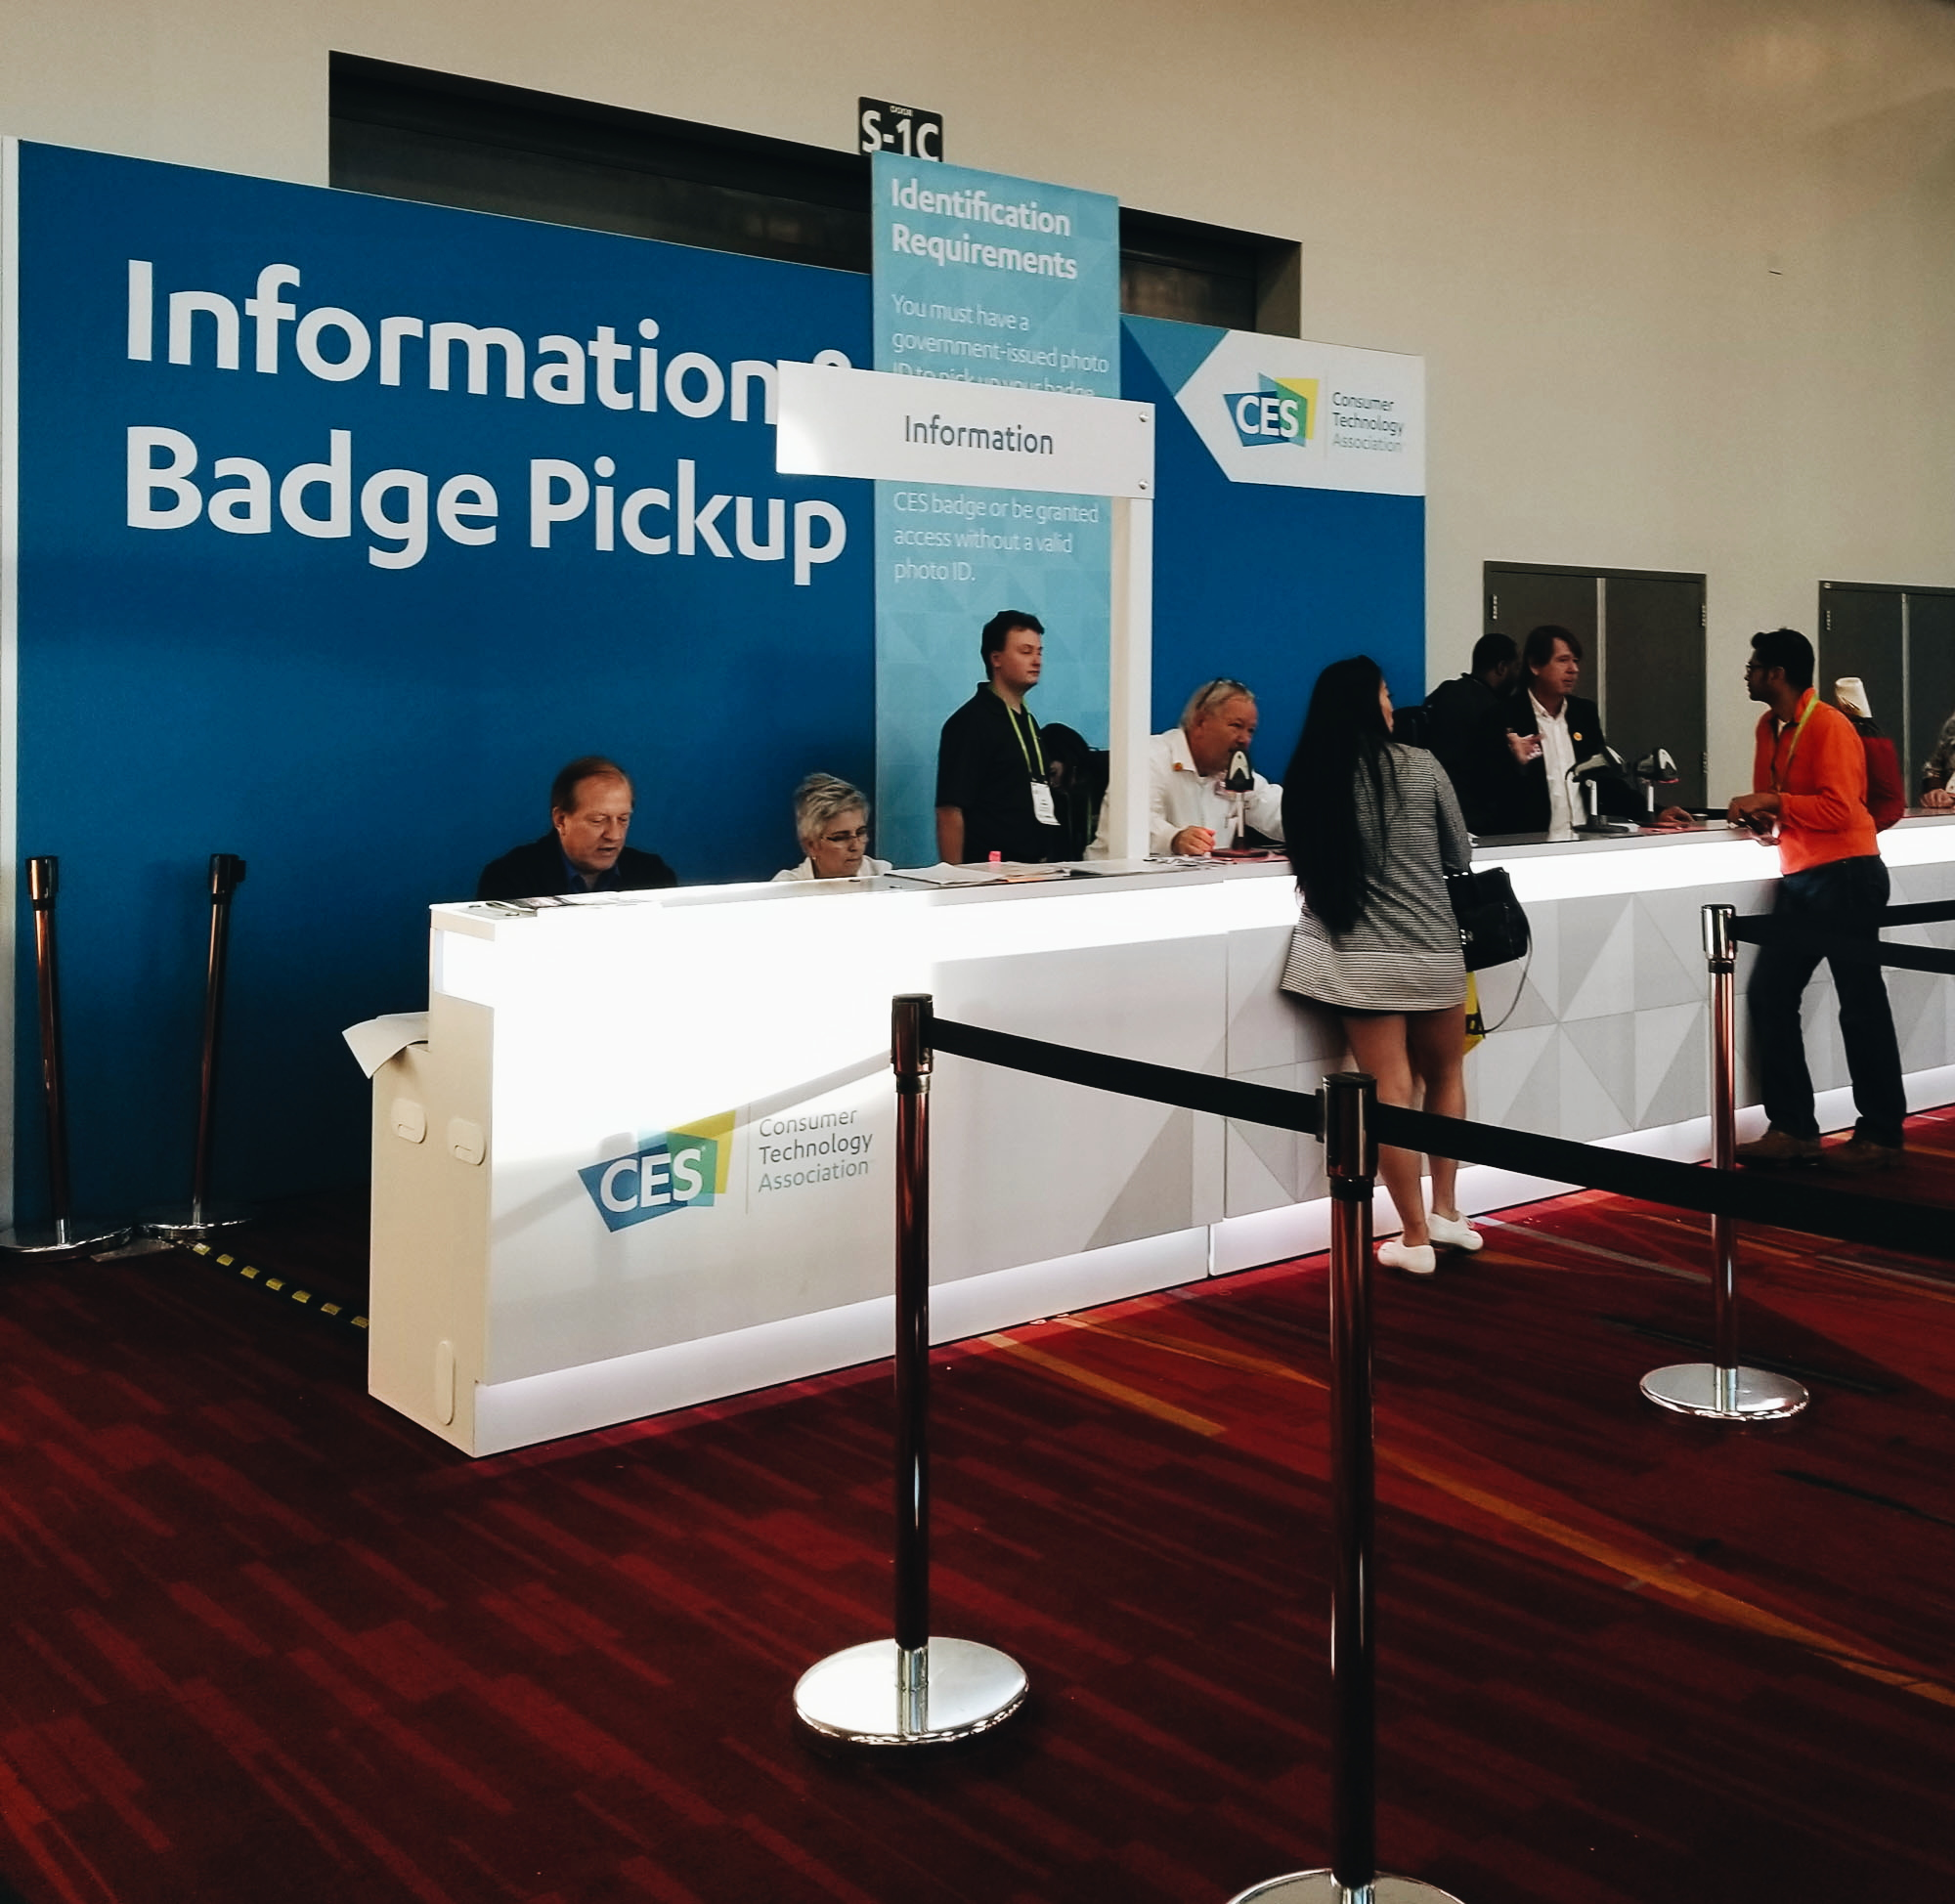 CES 2018 Information Booth